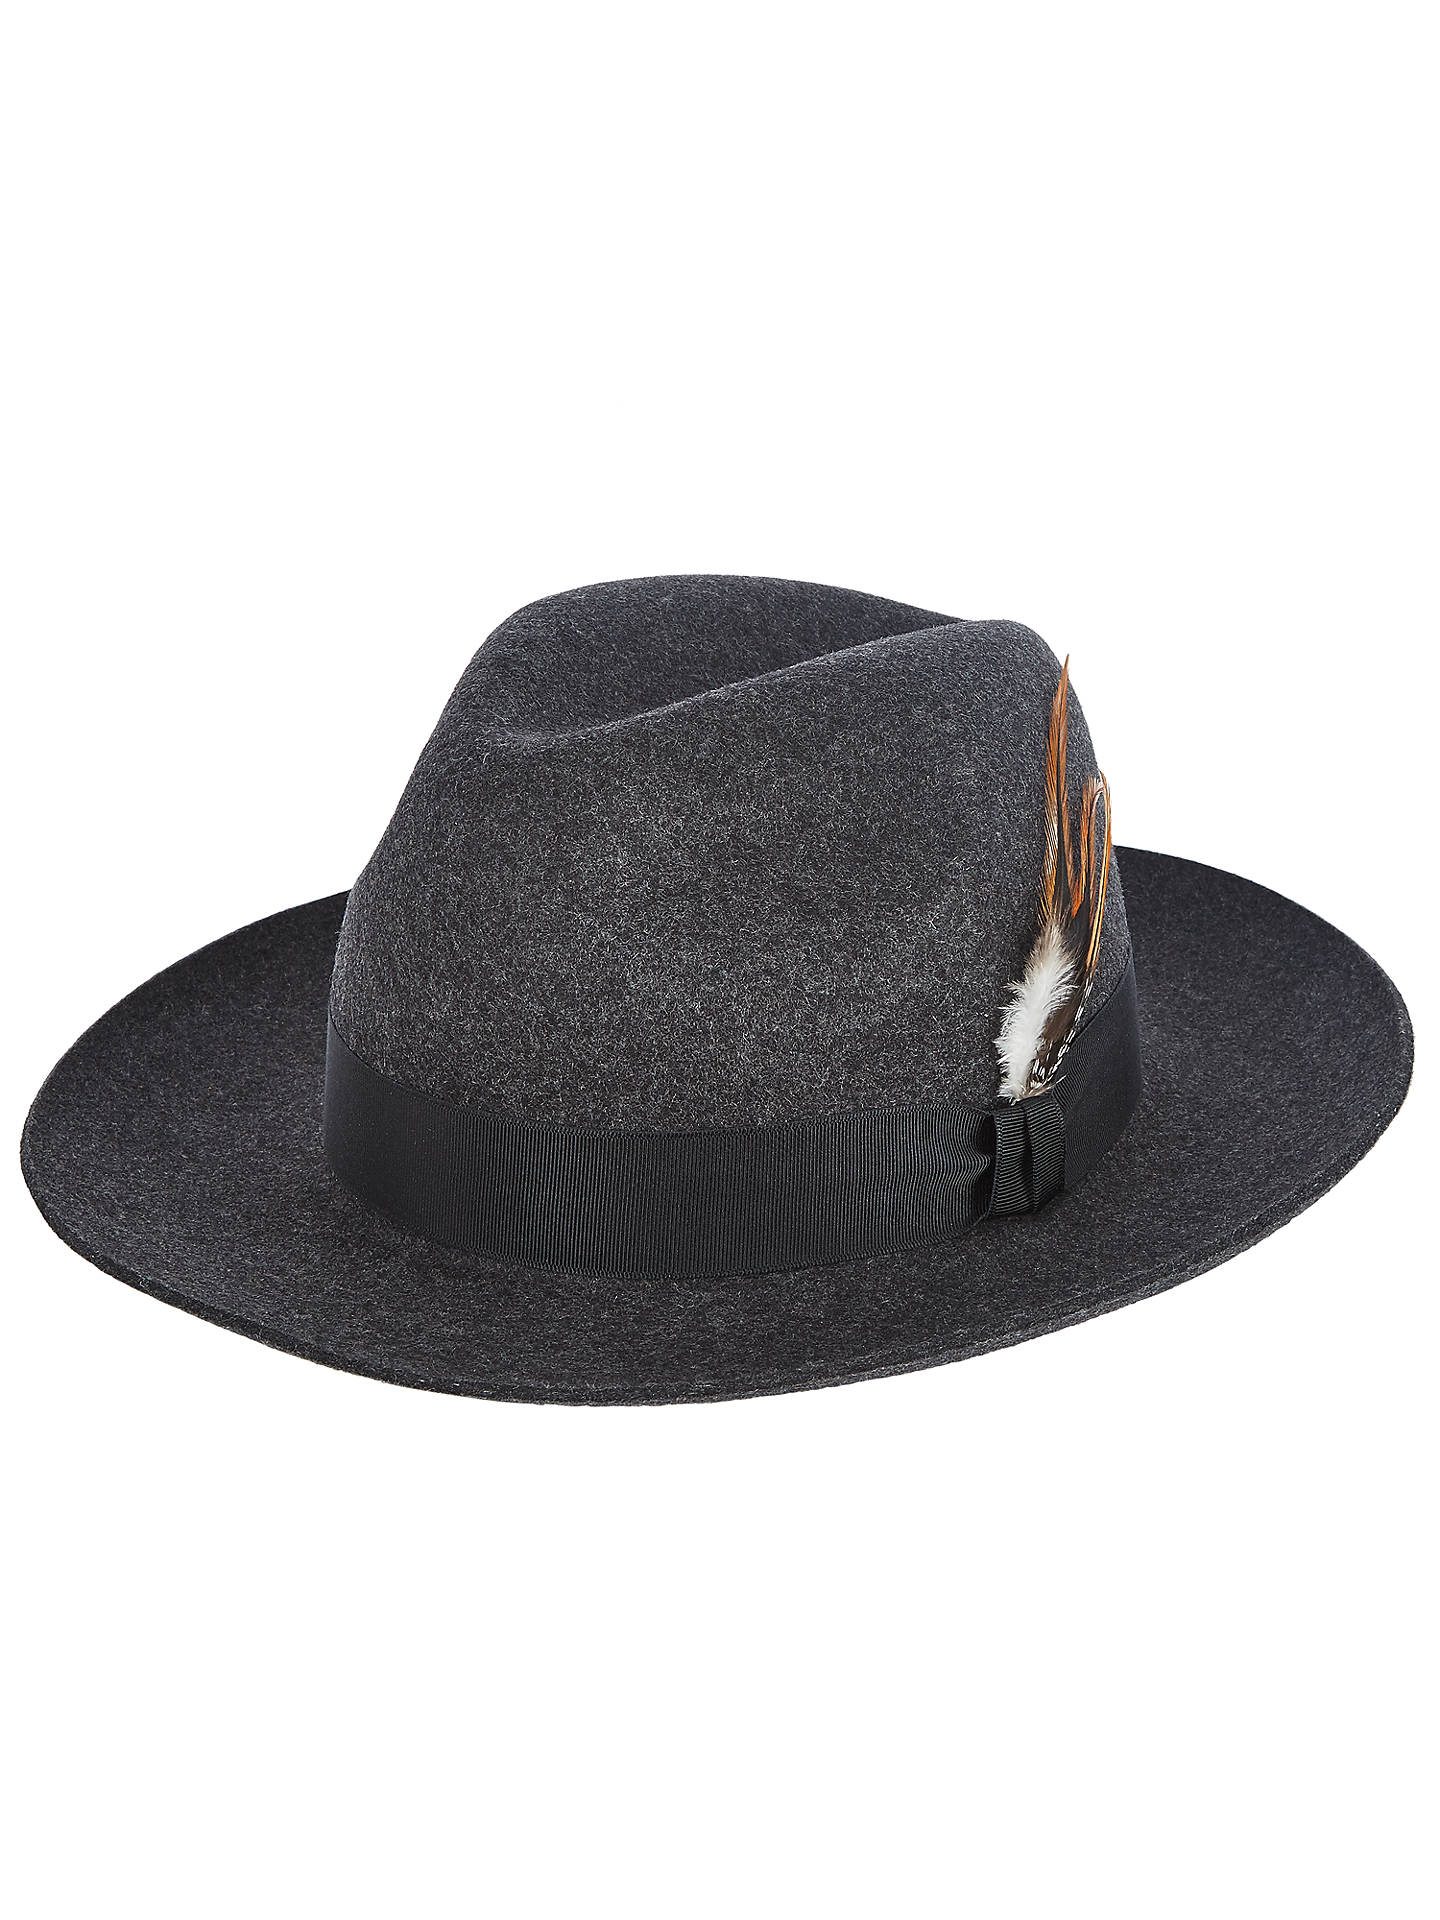 a585e73d309a02 Buy Christys' Grosvenor Fedora Hat, Charcoal, M Online at johnlewis. ...